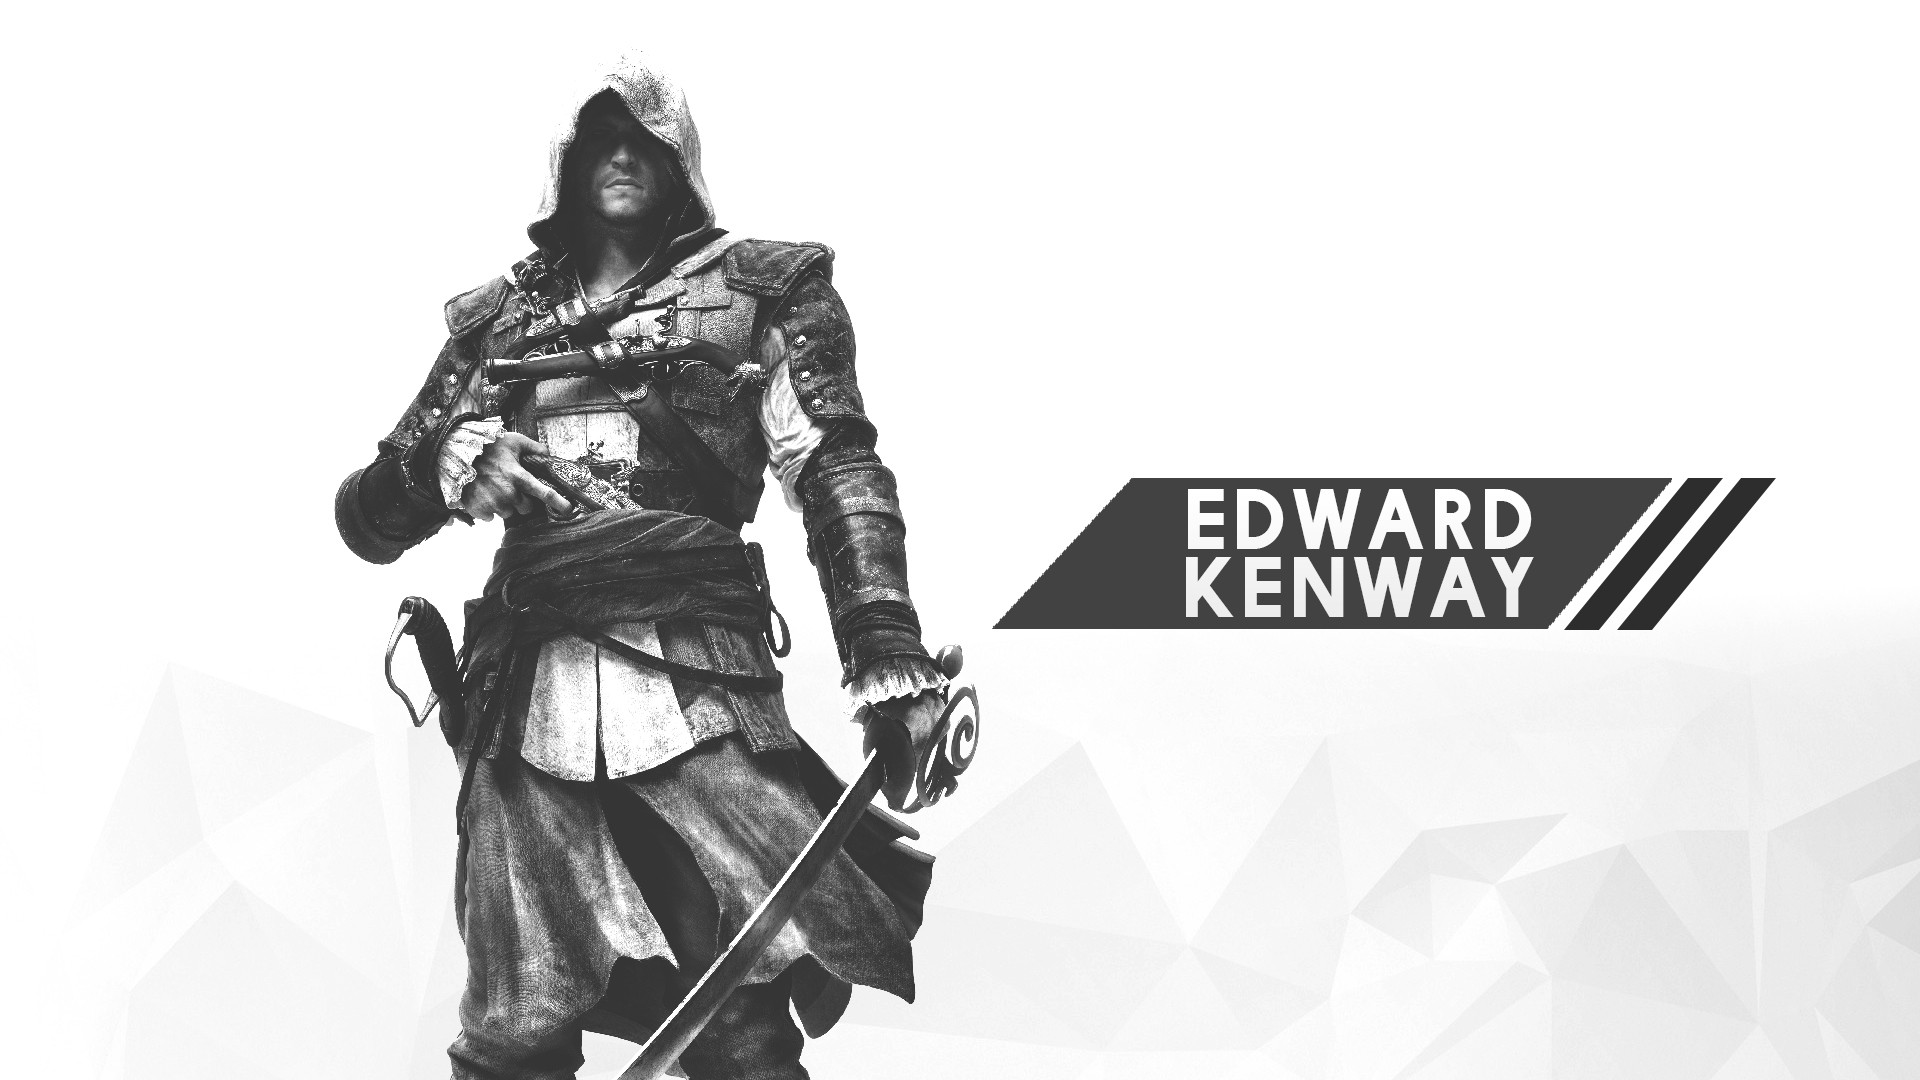 General 1920x1080 Assassin's Creed digital art minimalism 2D white white background video games Edward Kenway Assassin's Creed: Black Flag